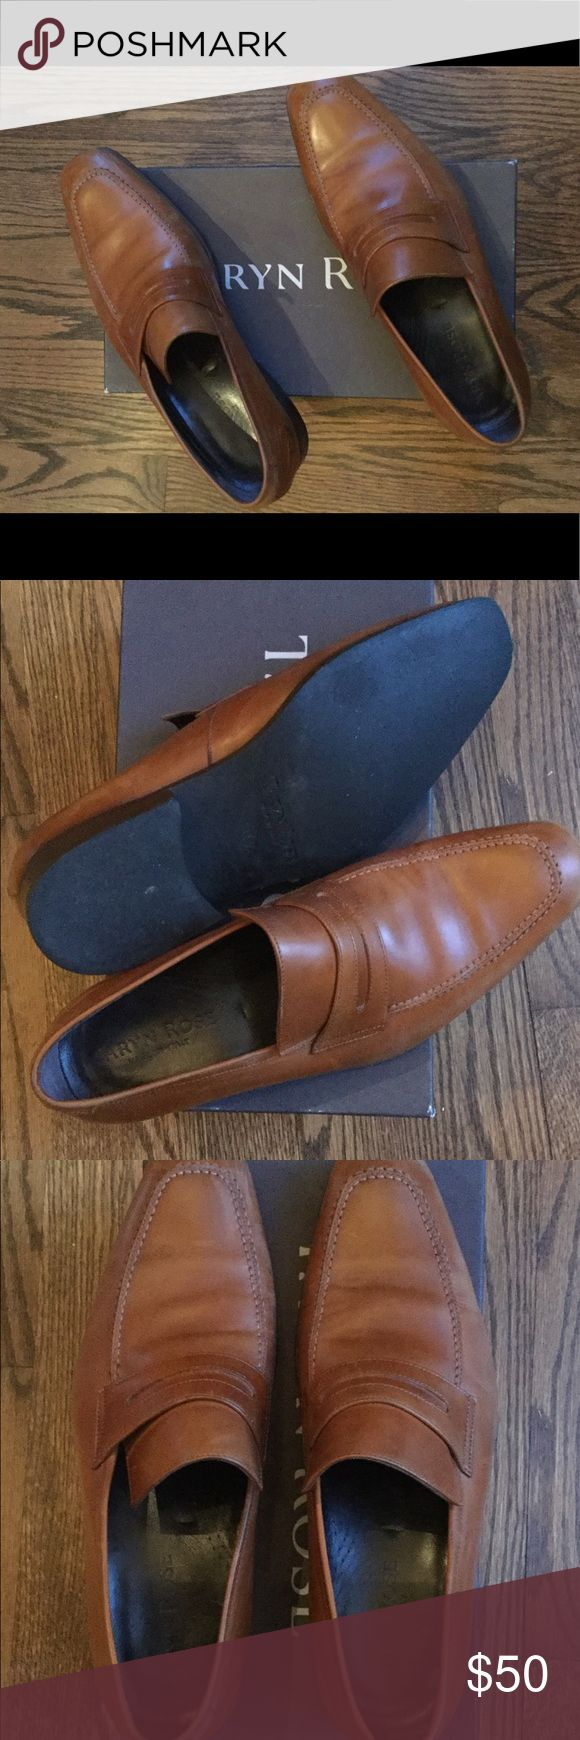 Taryn Rose men's dress shoe Made in Italy - lightly worn - good condition Taryn Rose Shoes Loafers & Slip-Ons